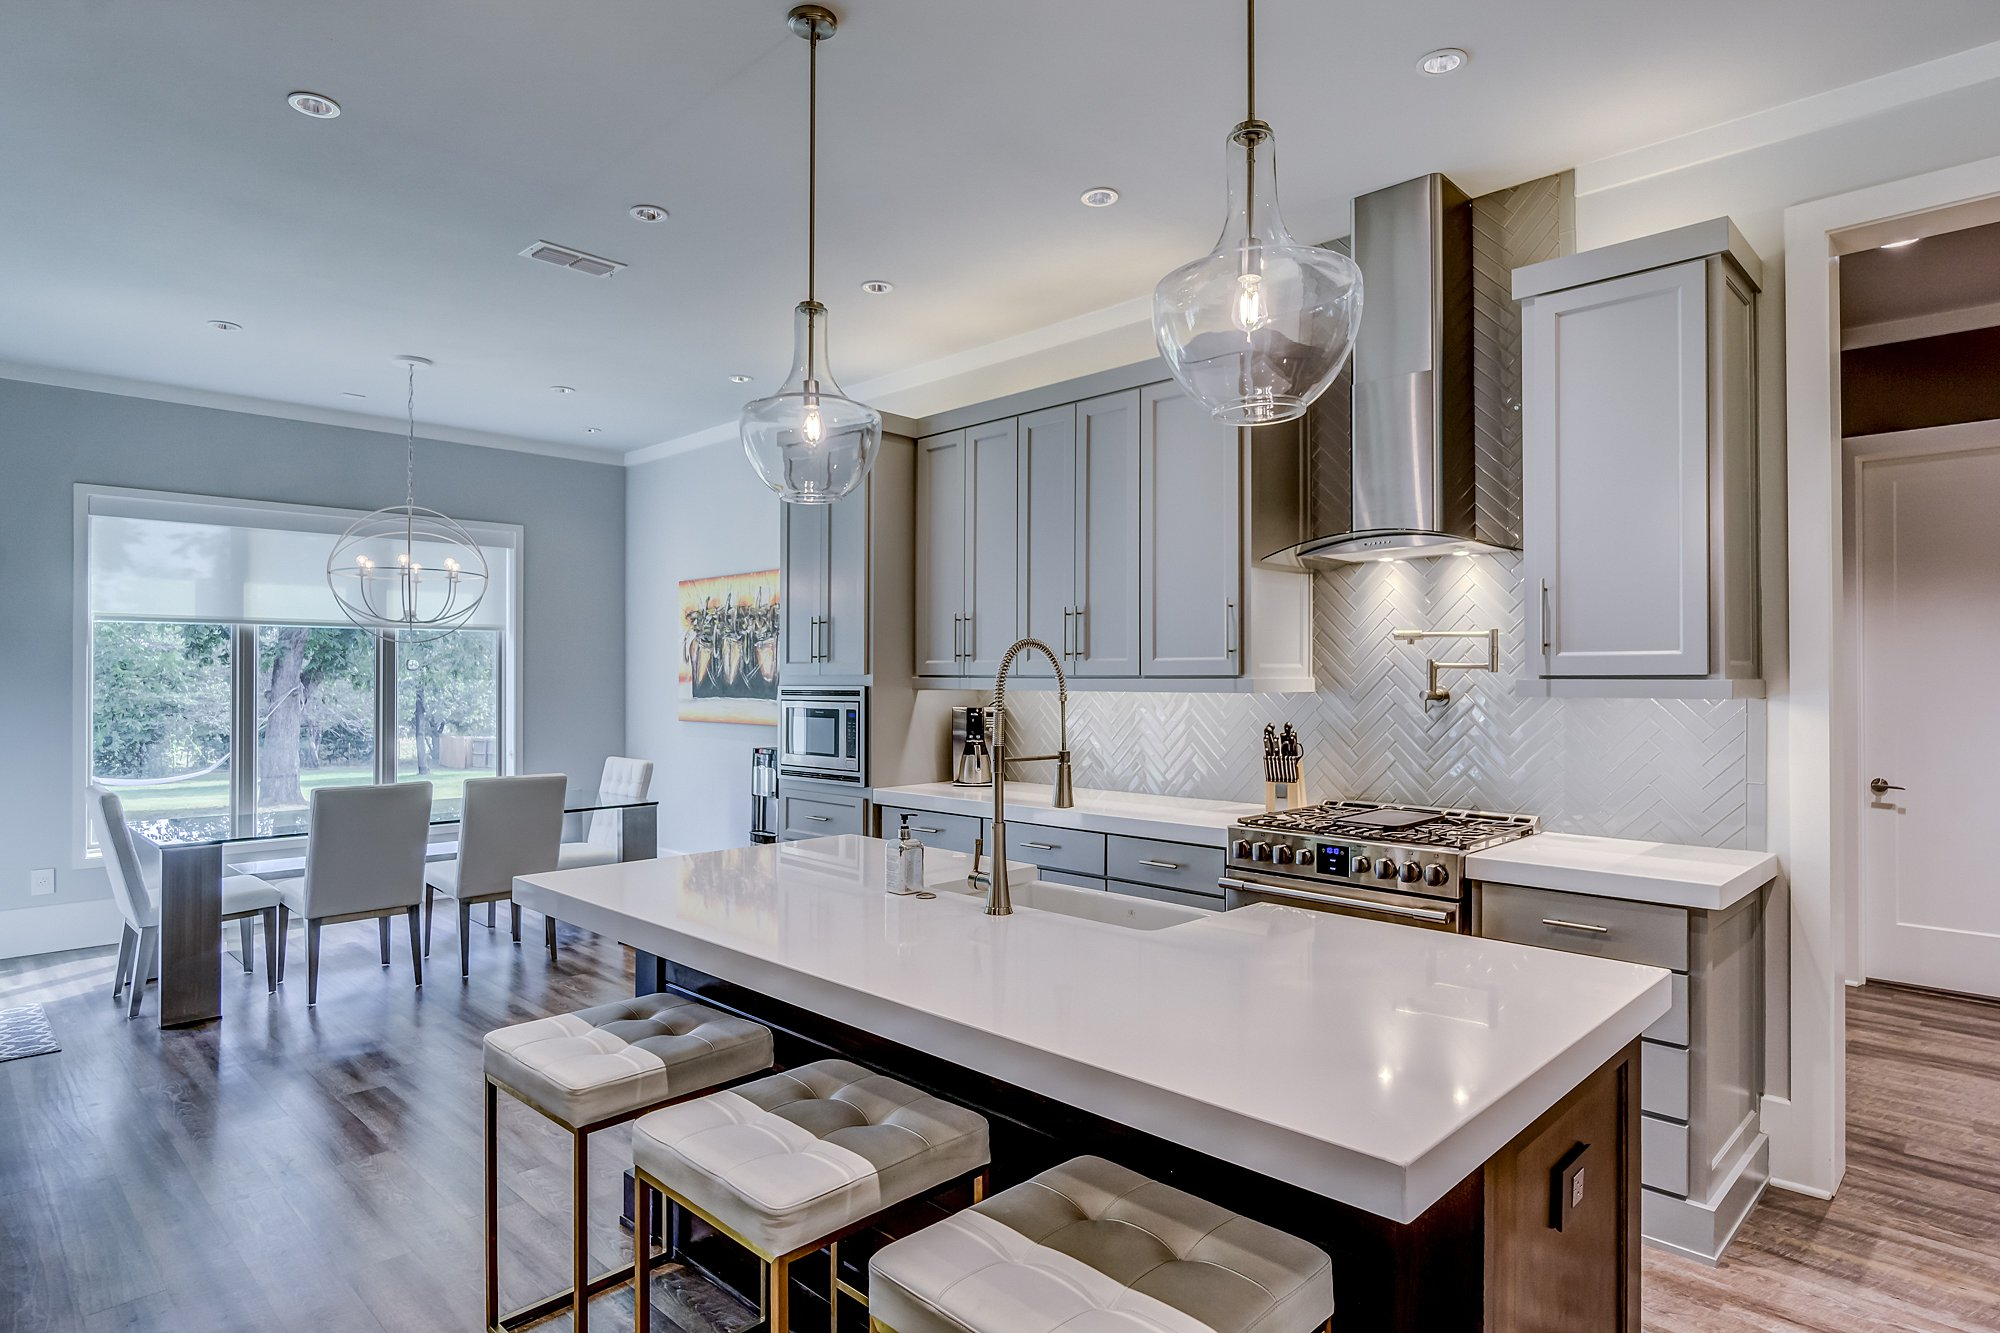 Kitchen - 300 Deer Crossing, Bullard Texas - Megan Clader - Drake Real Estate